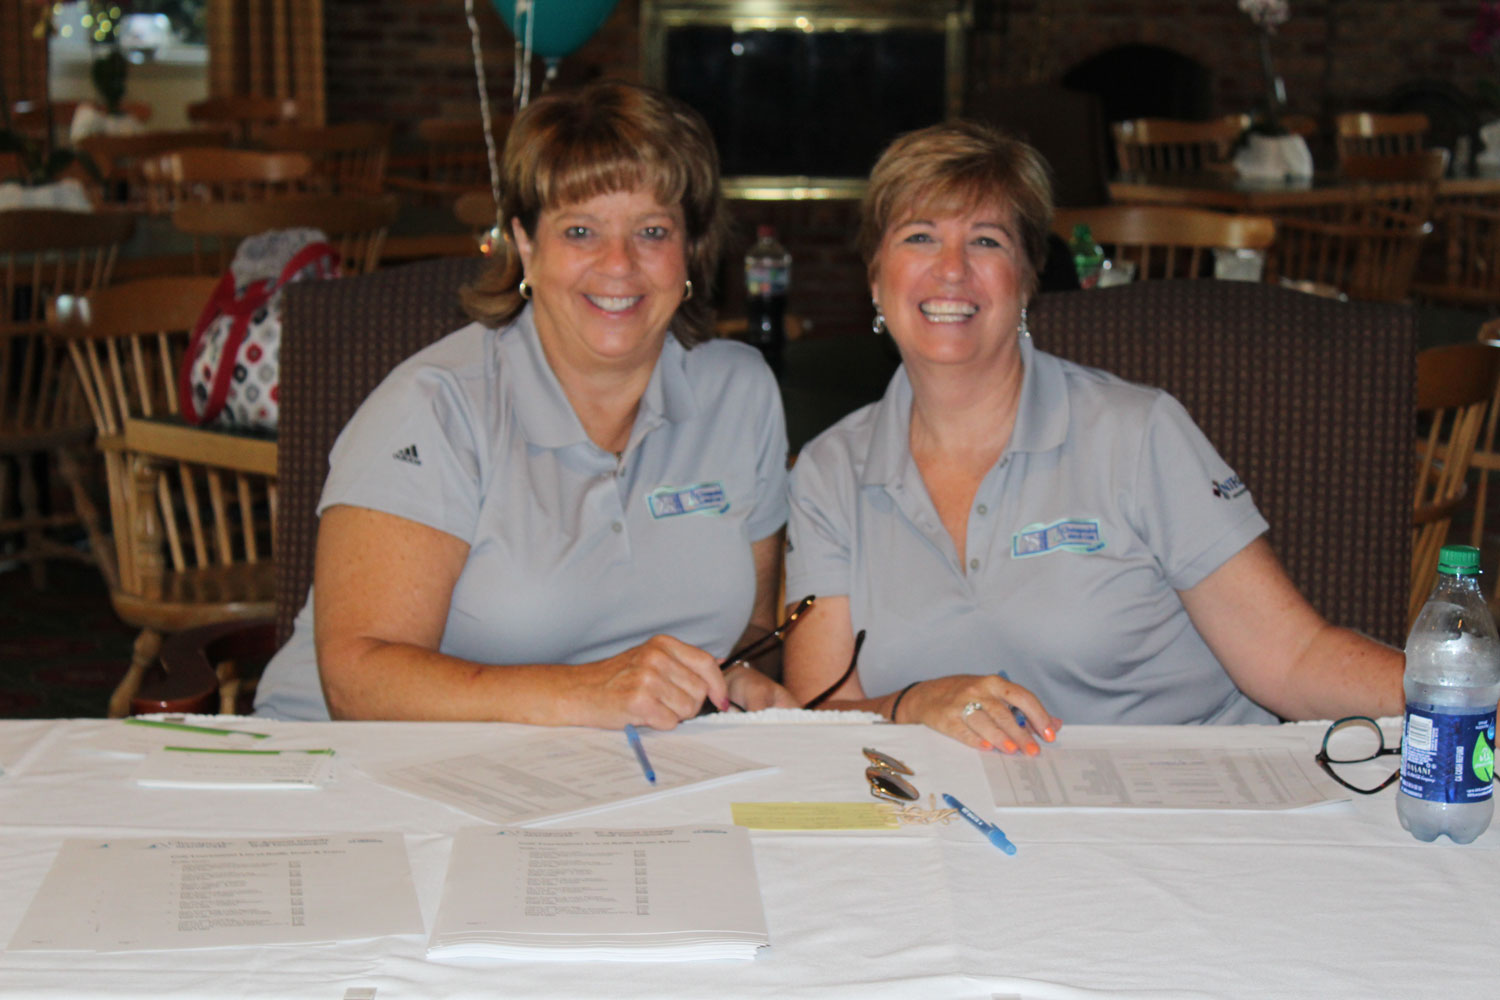 Chesapeake Health Care 6th Annual Golf Tournament gallery image #13